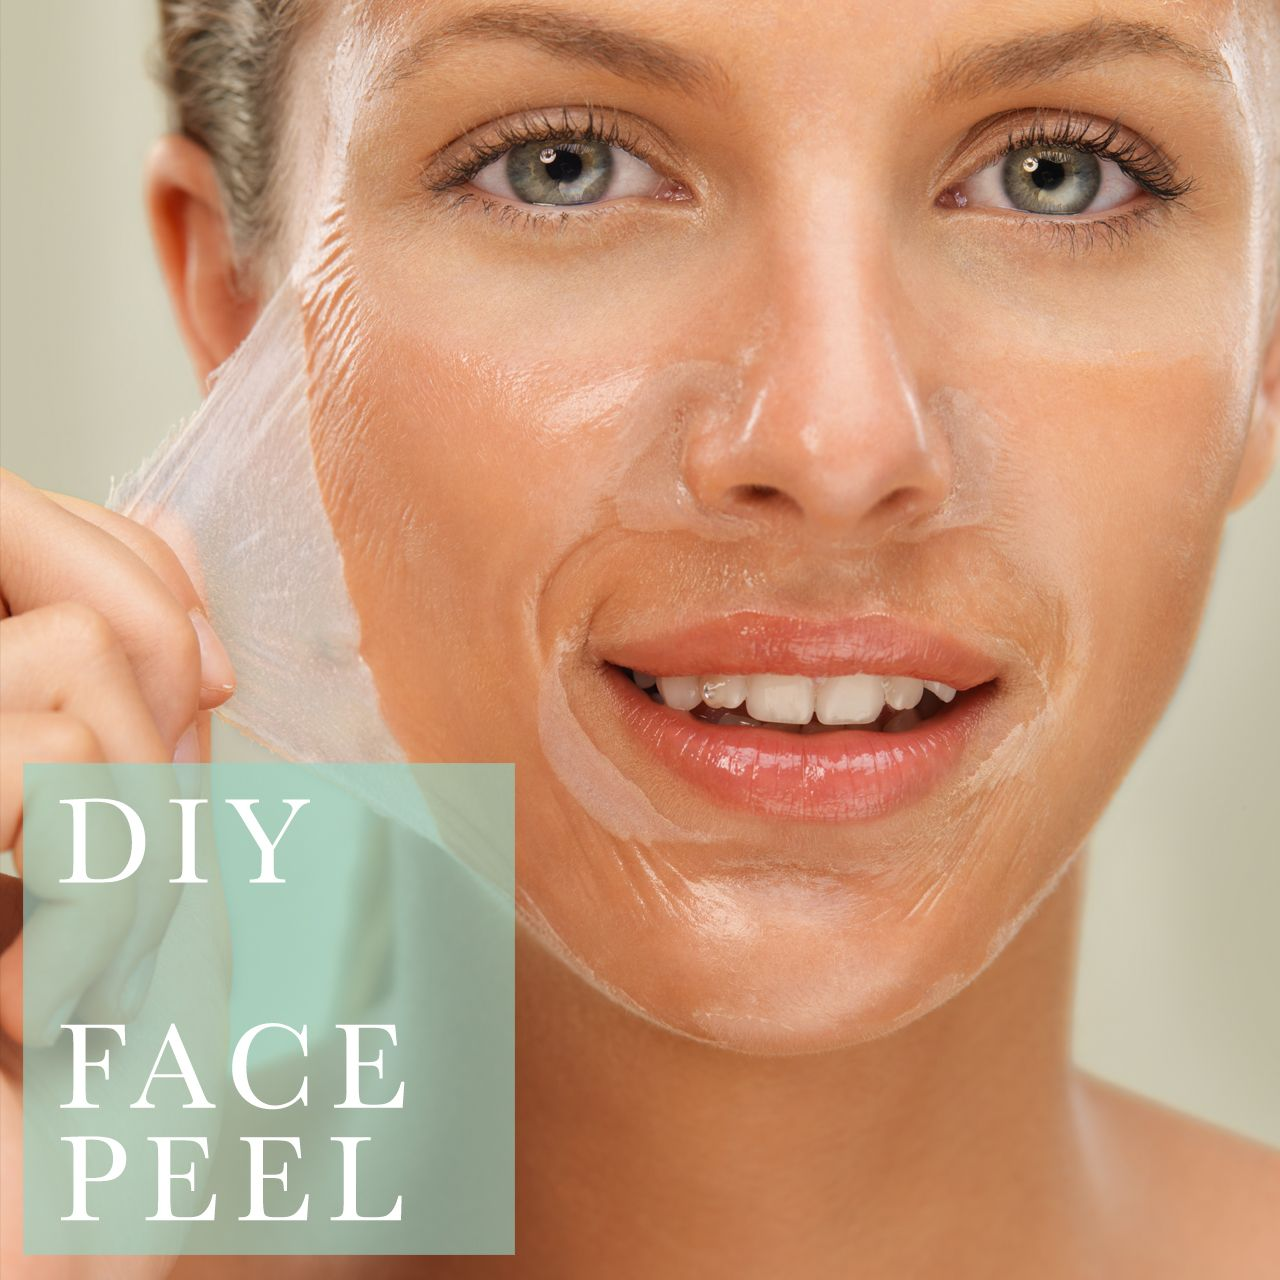 Homemade Face Scrub For Blackheads Diy 43acne 43and 43blackhead Fighting 43face 43peel Beauty